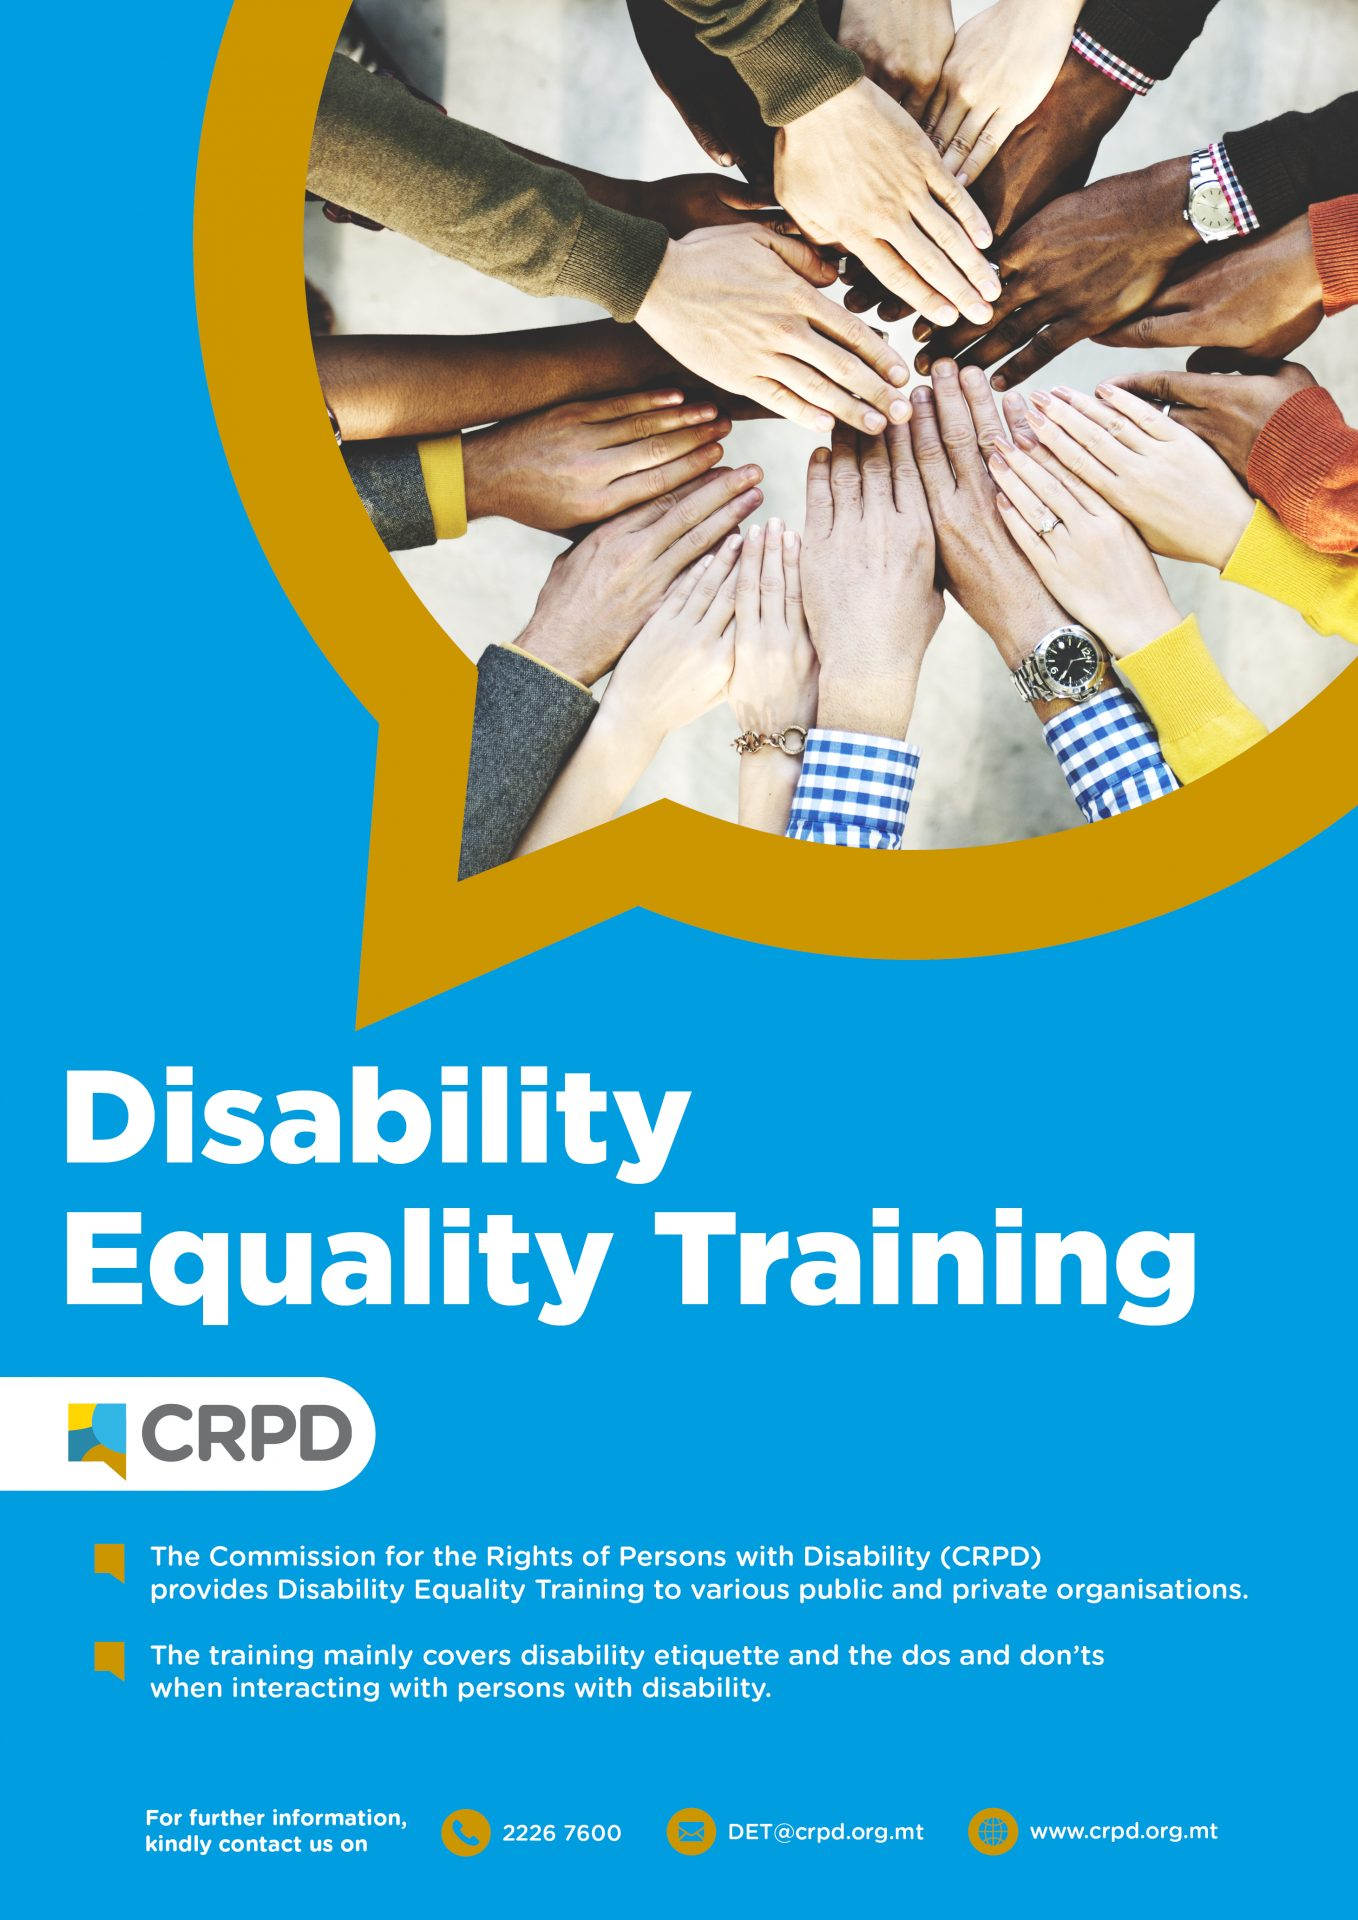 Disability Equality Training Poster - Photo of hands on top of each other